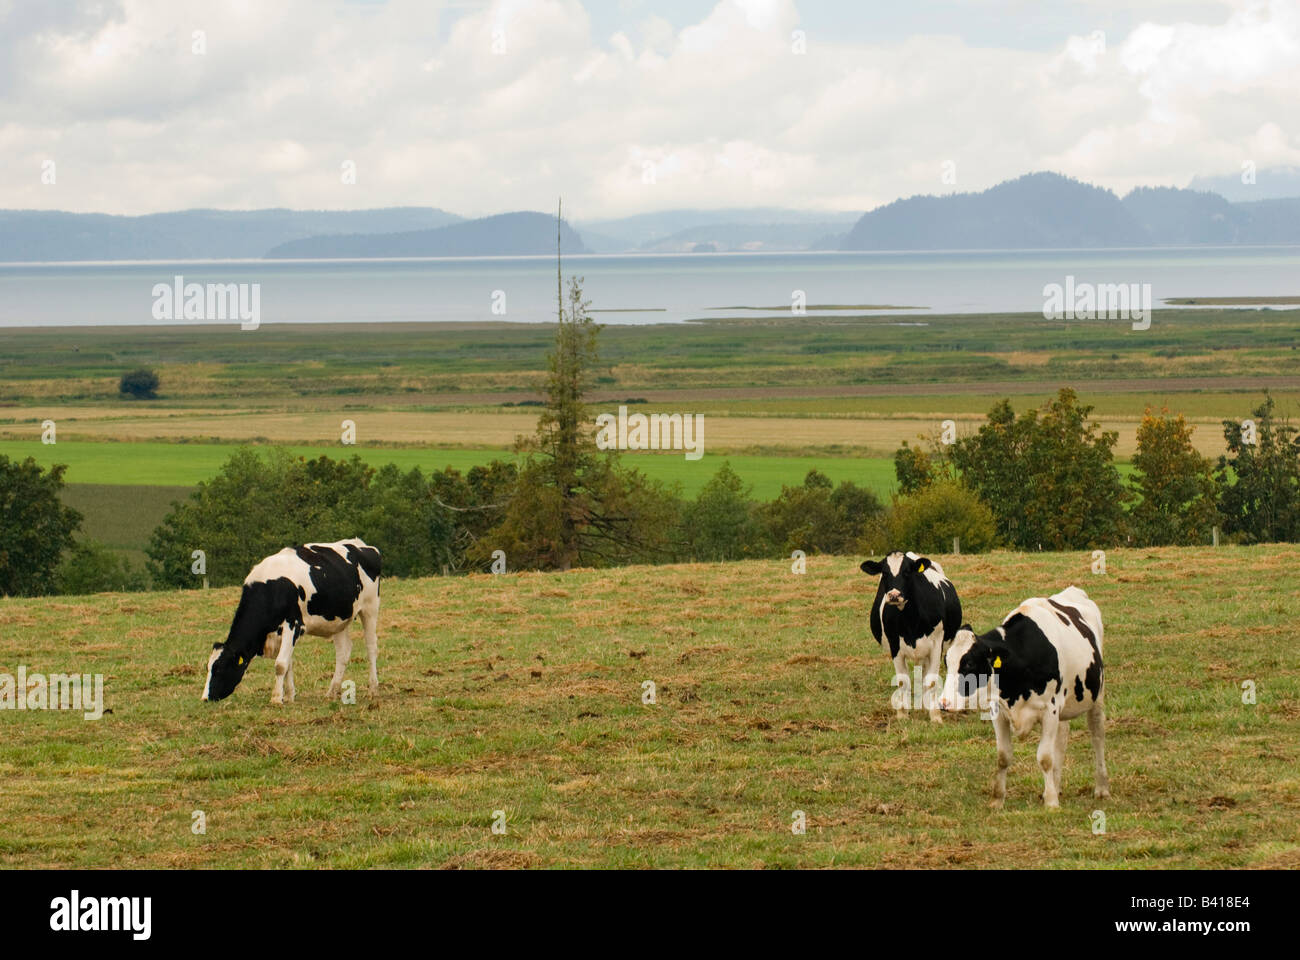 USA, WA, Skagit Valley.  Pasture with view.  Holsteins graze on scenic pastureland overlooking Puget Sound - Stock Image